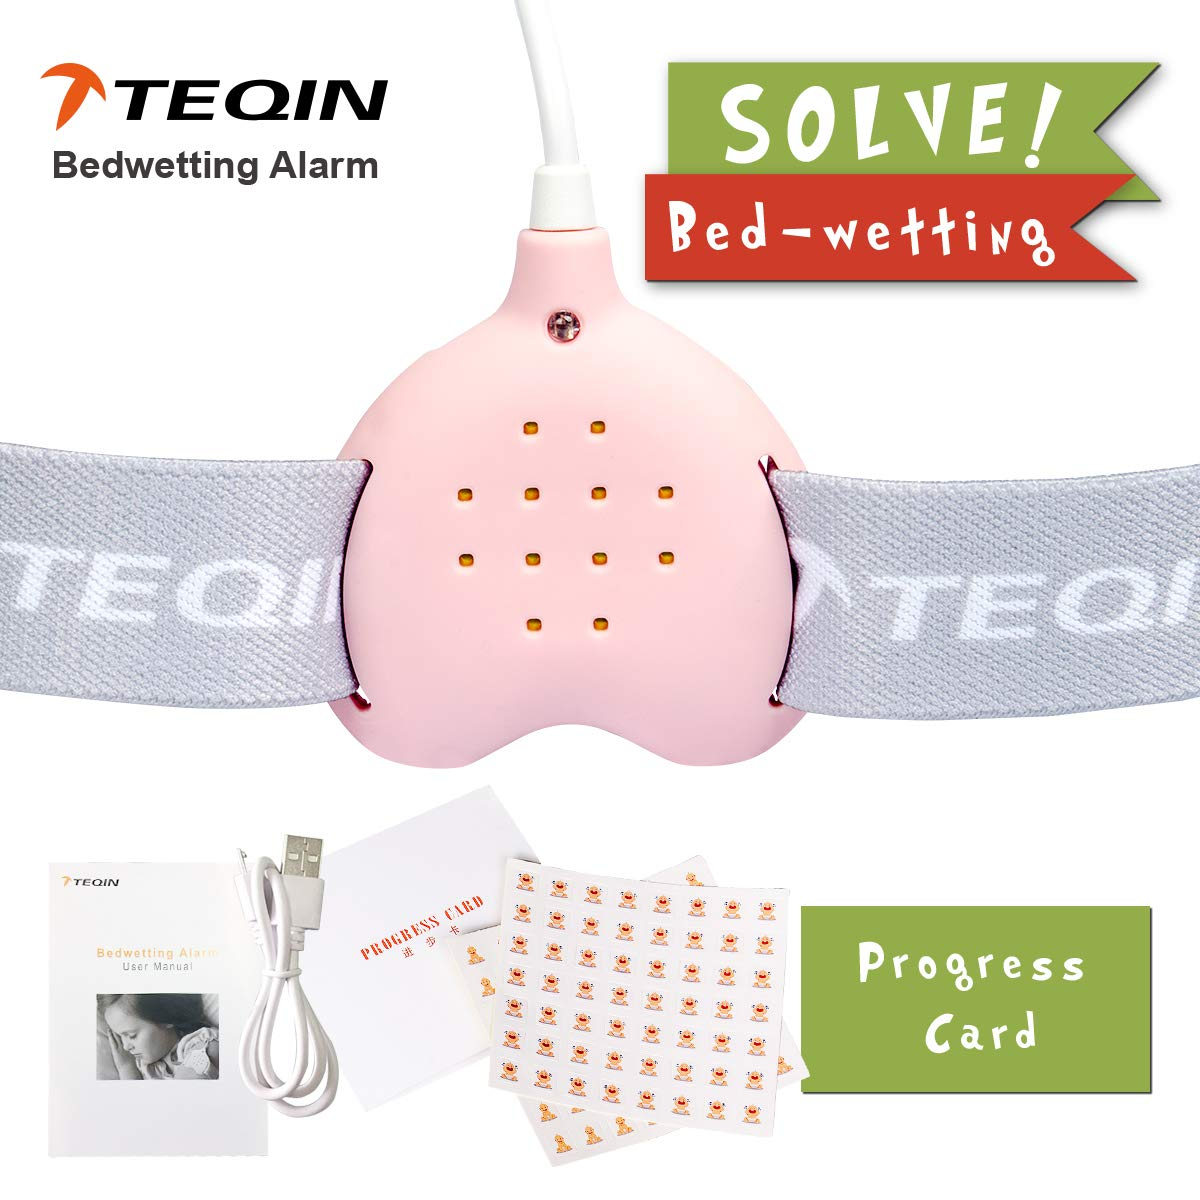 3in1 Bed Child Rechargeable Bedwetting Alarm Enuresis Urine Detection Loud Sound and Strong Vibration for Bedwetters Deep Sleepers, Potty Training for Boys Girls Kids(Pink)